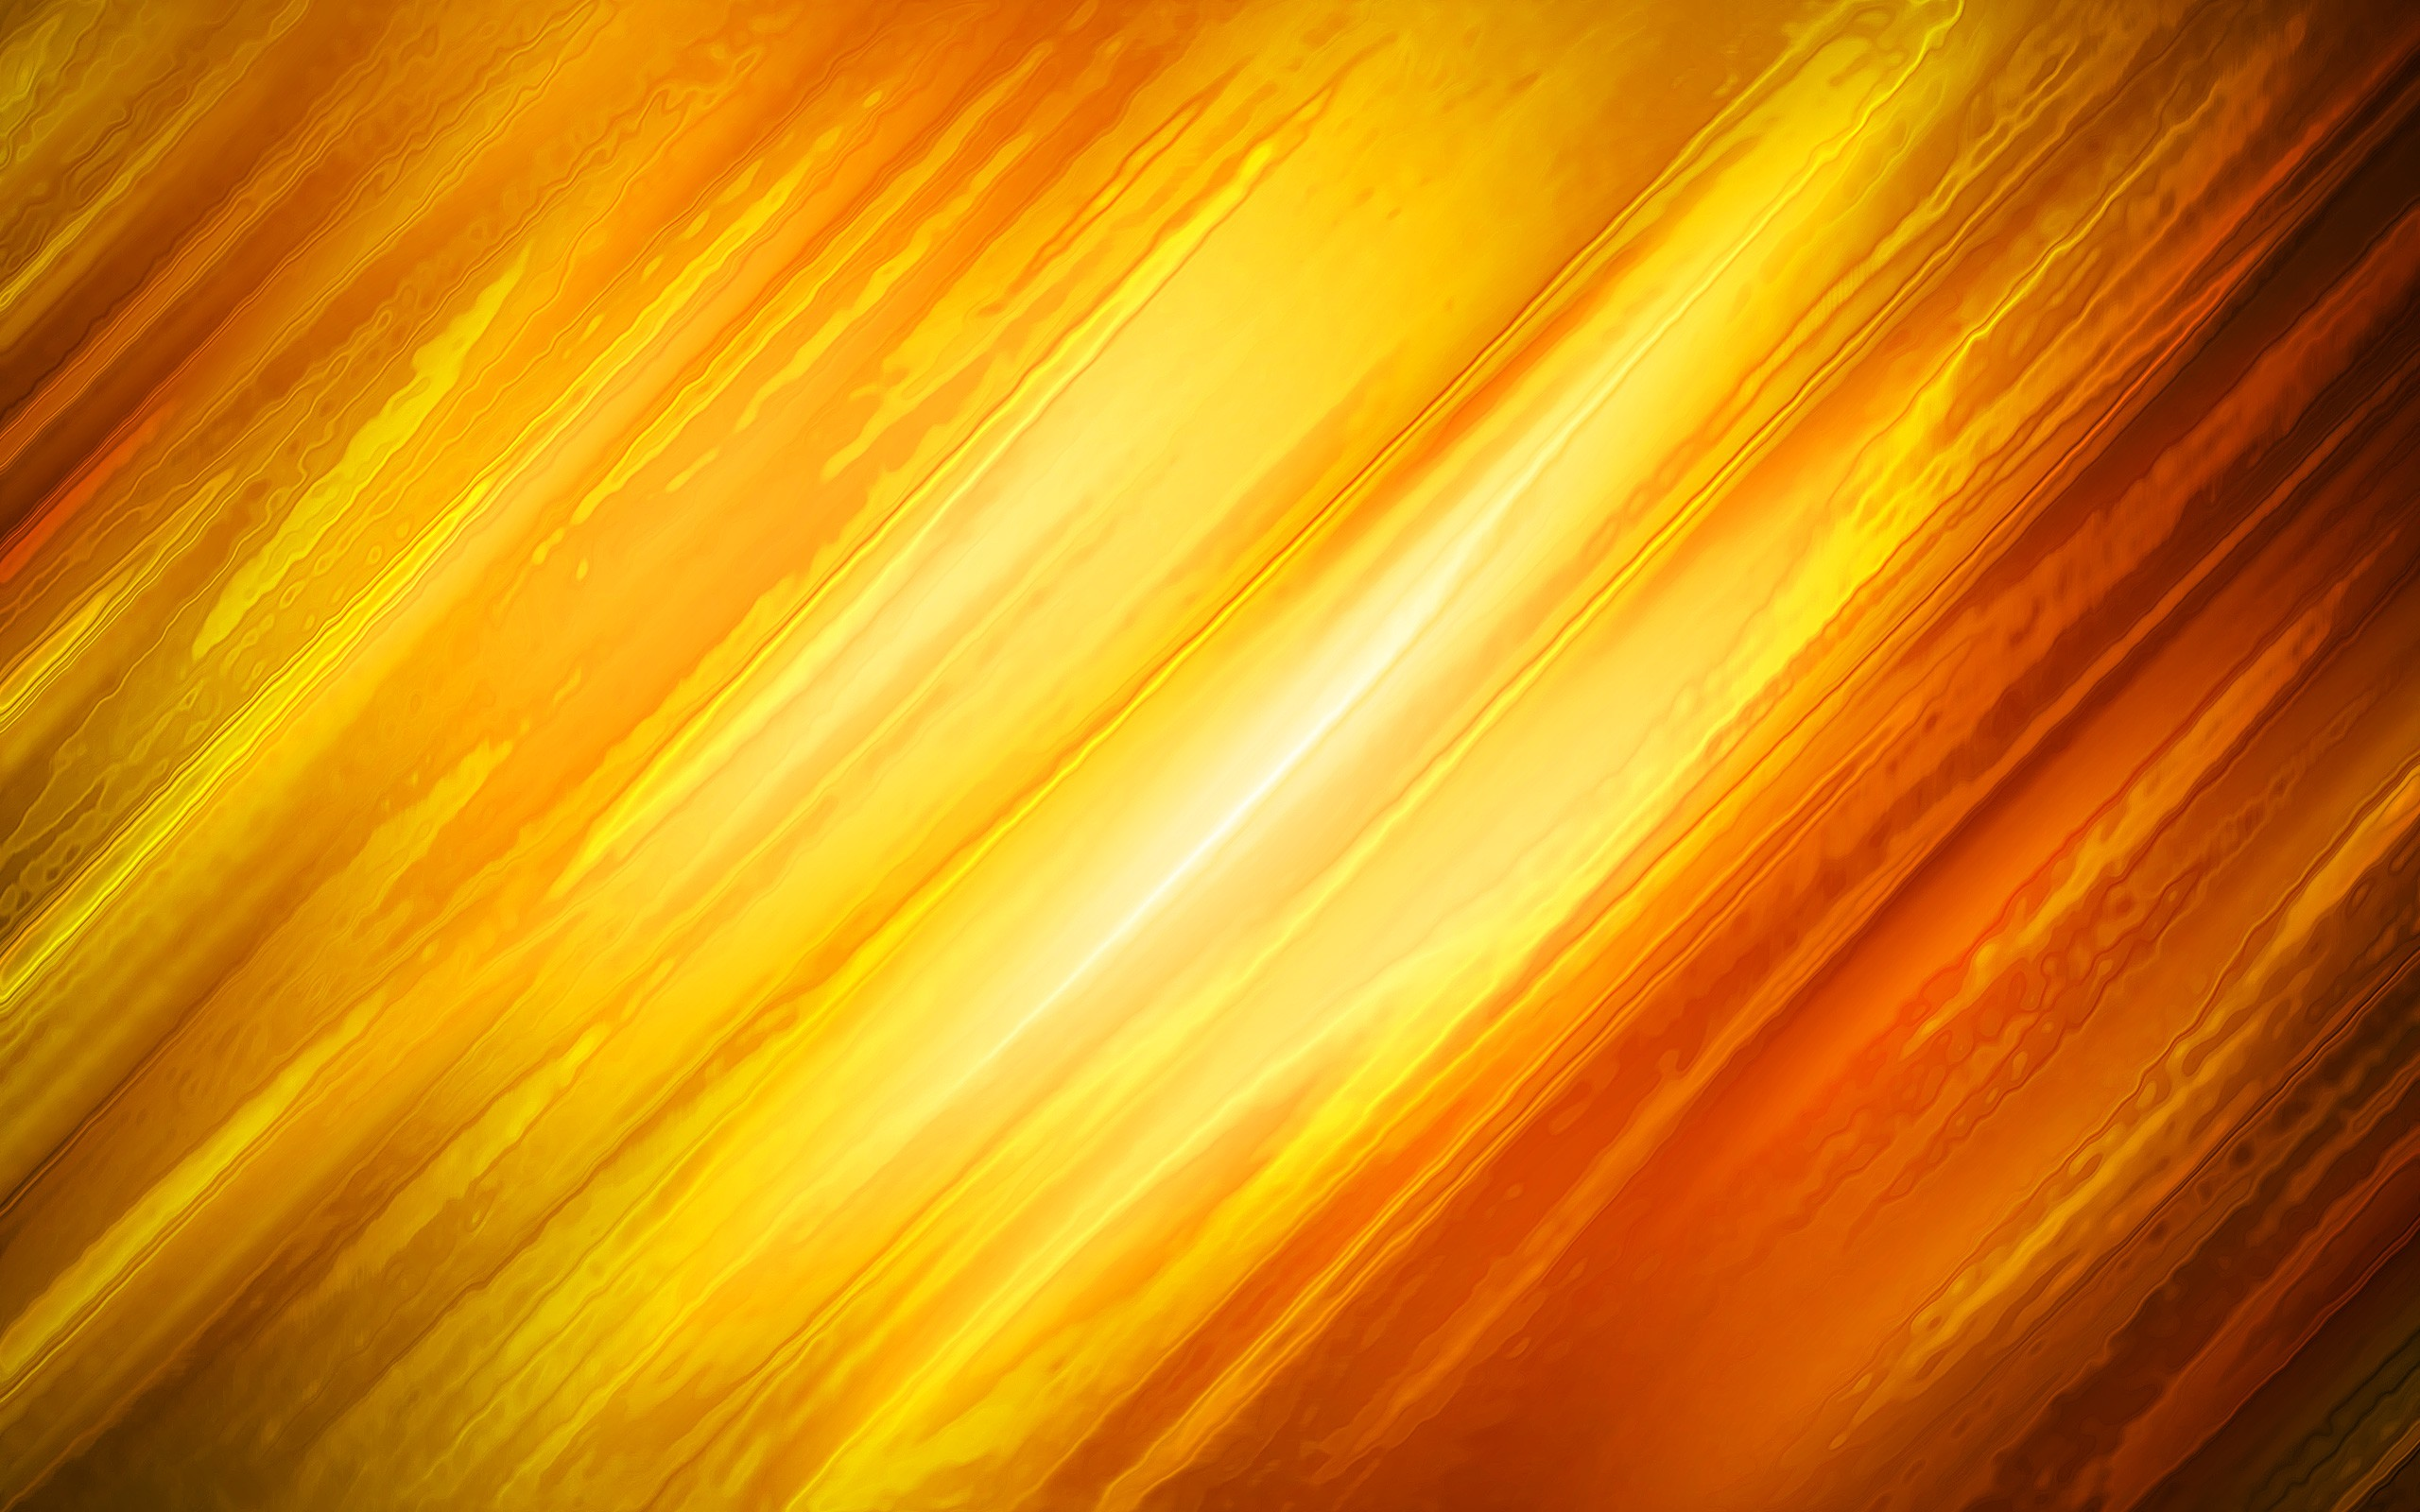 2560x1600 Abstract Yellow and Orange Background